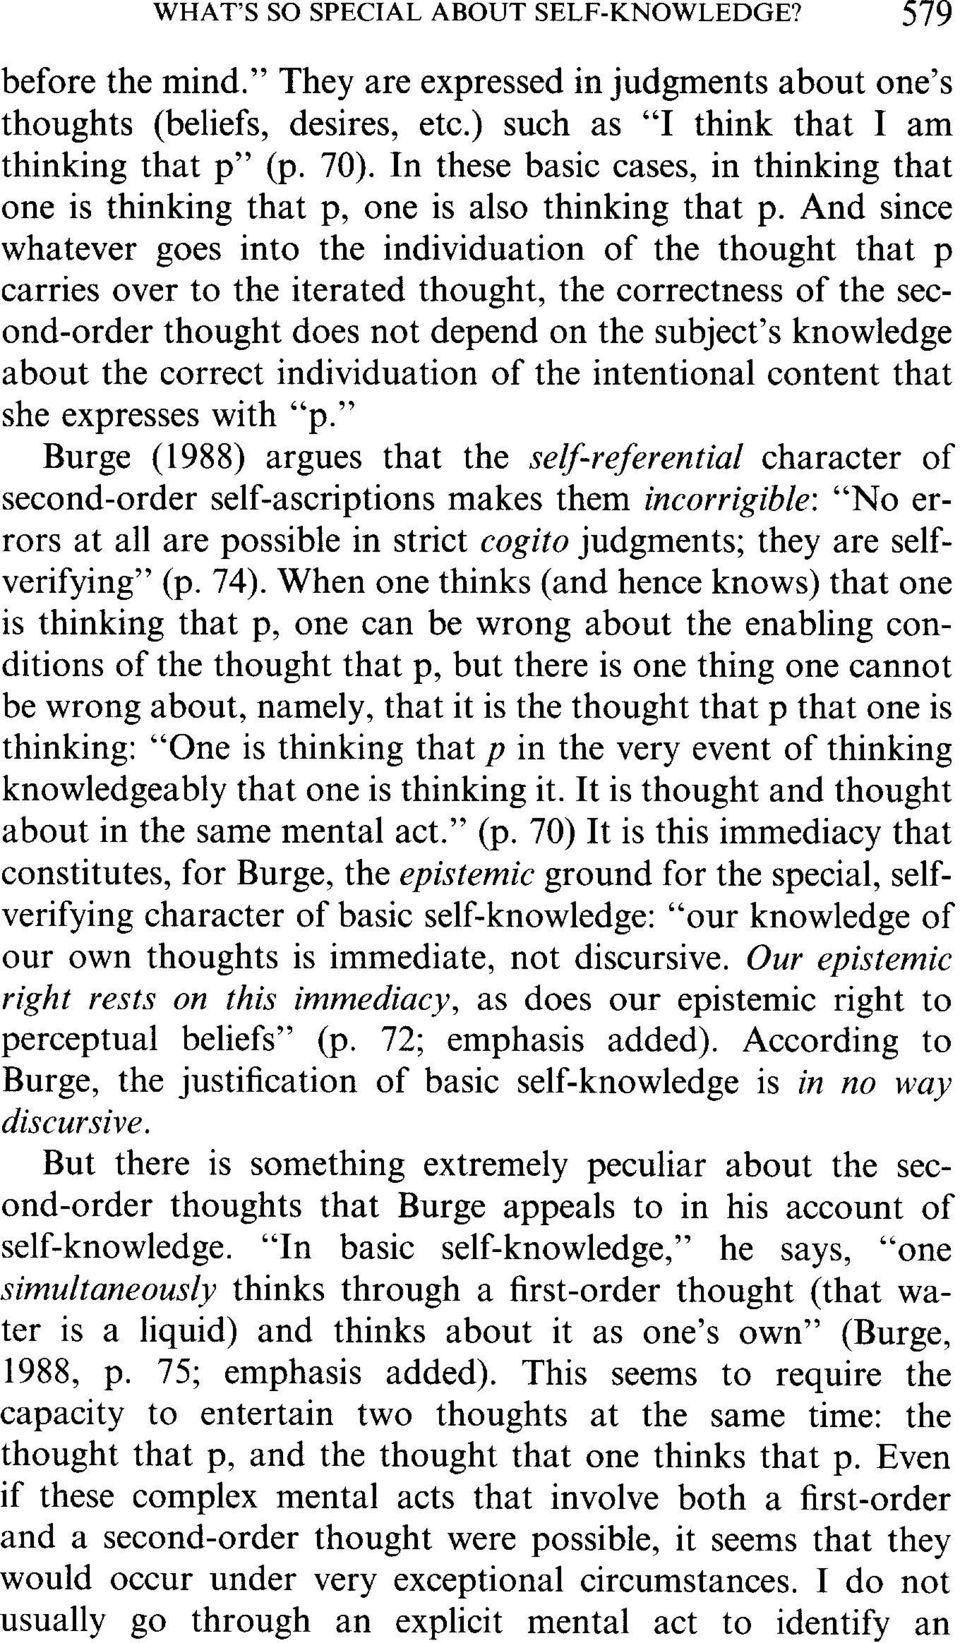 And since whatever goes into the individuation of the thought that p carries over to the iterated thought, the correctness of the second-order thought does not depend on the subject's knowledge about